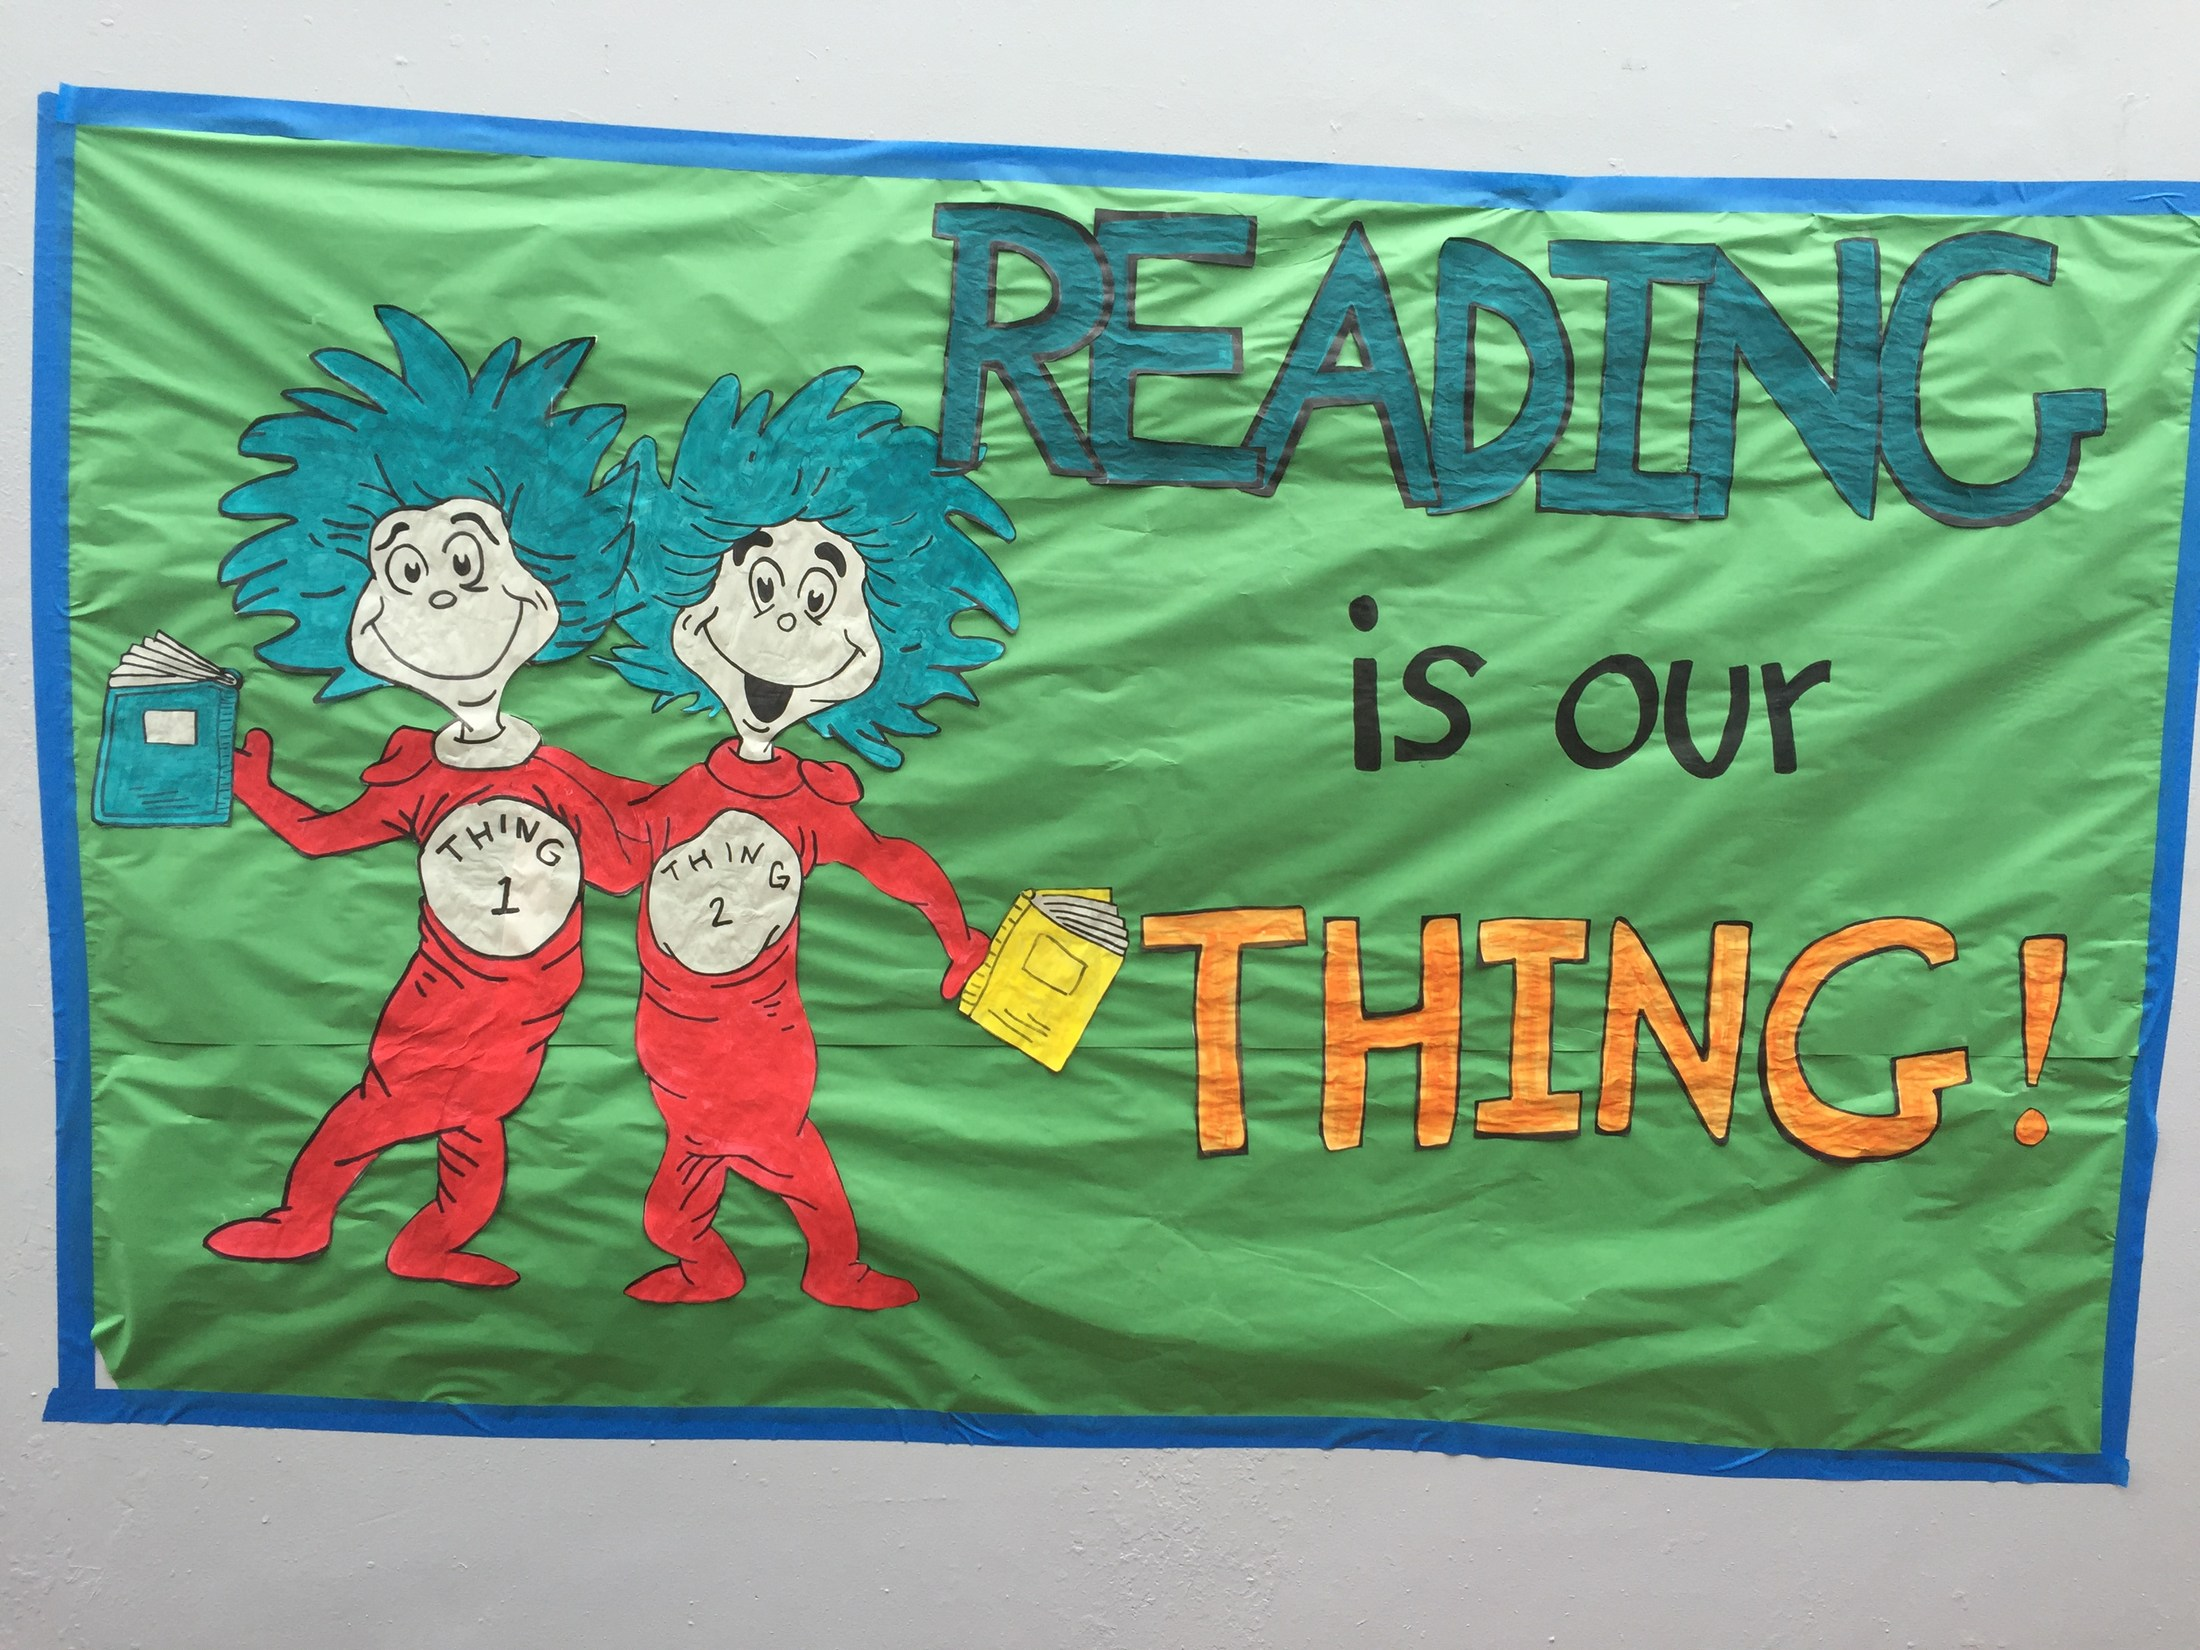 Dr. Seuss reading banner featuring Thing 1 and Thing 2